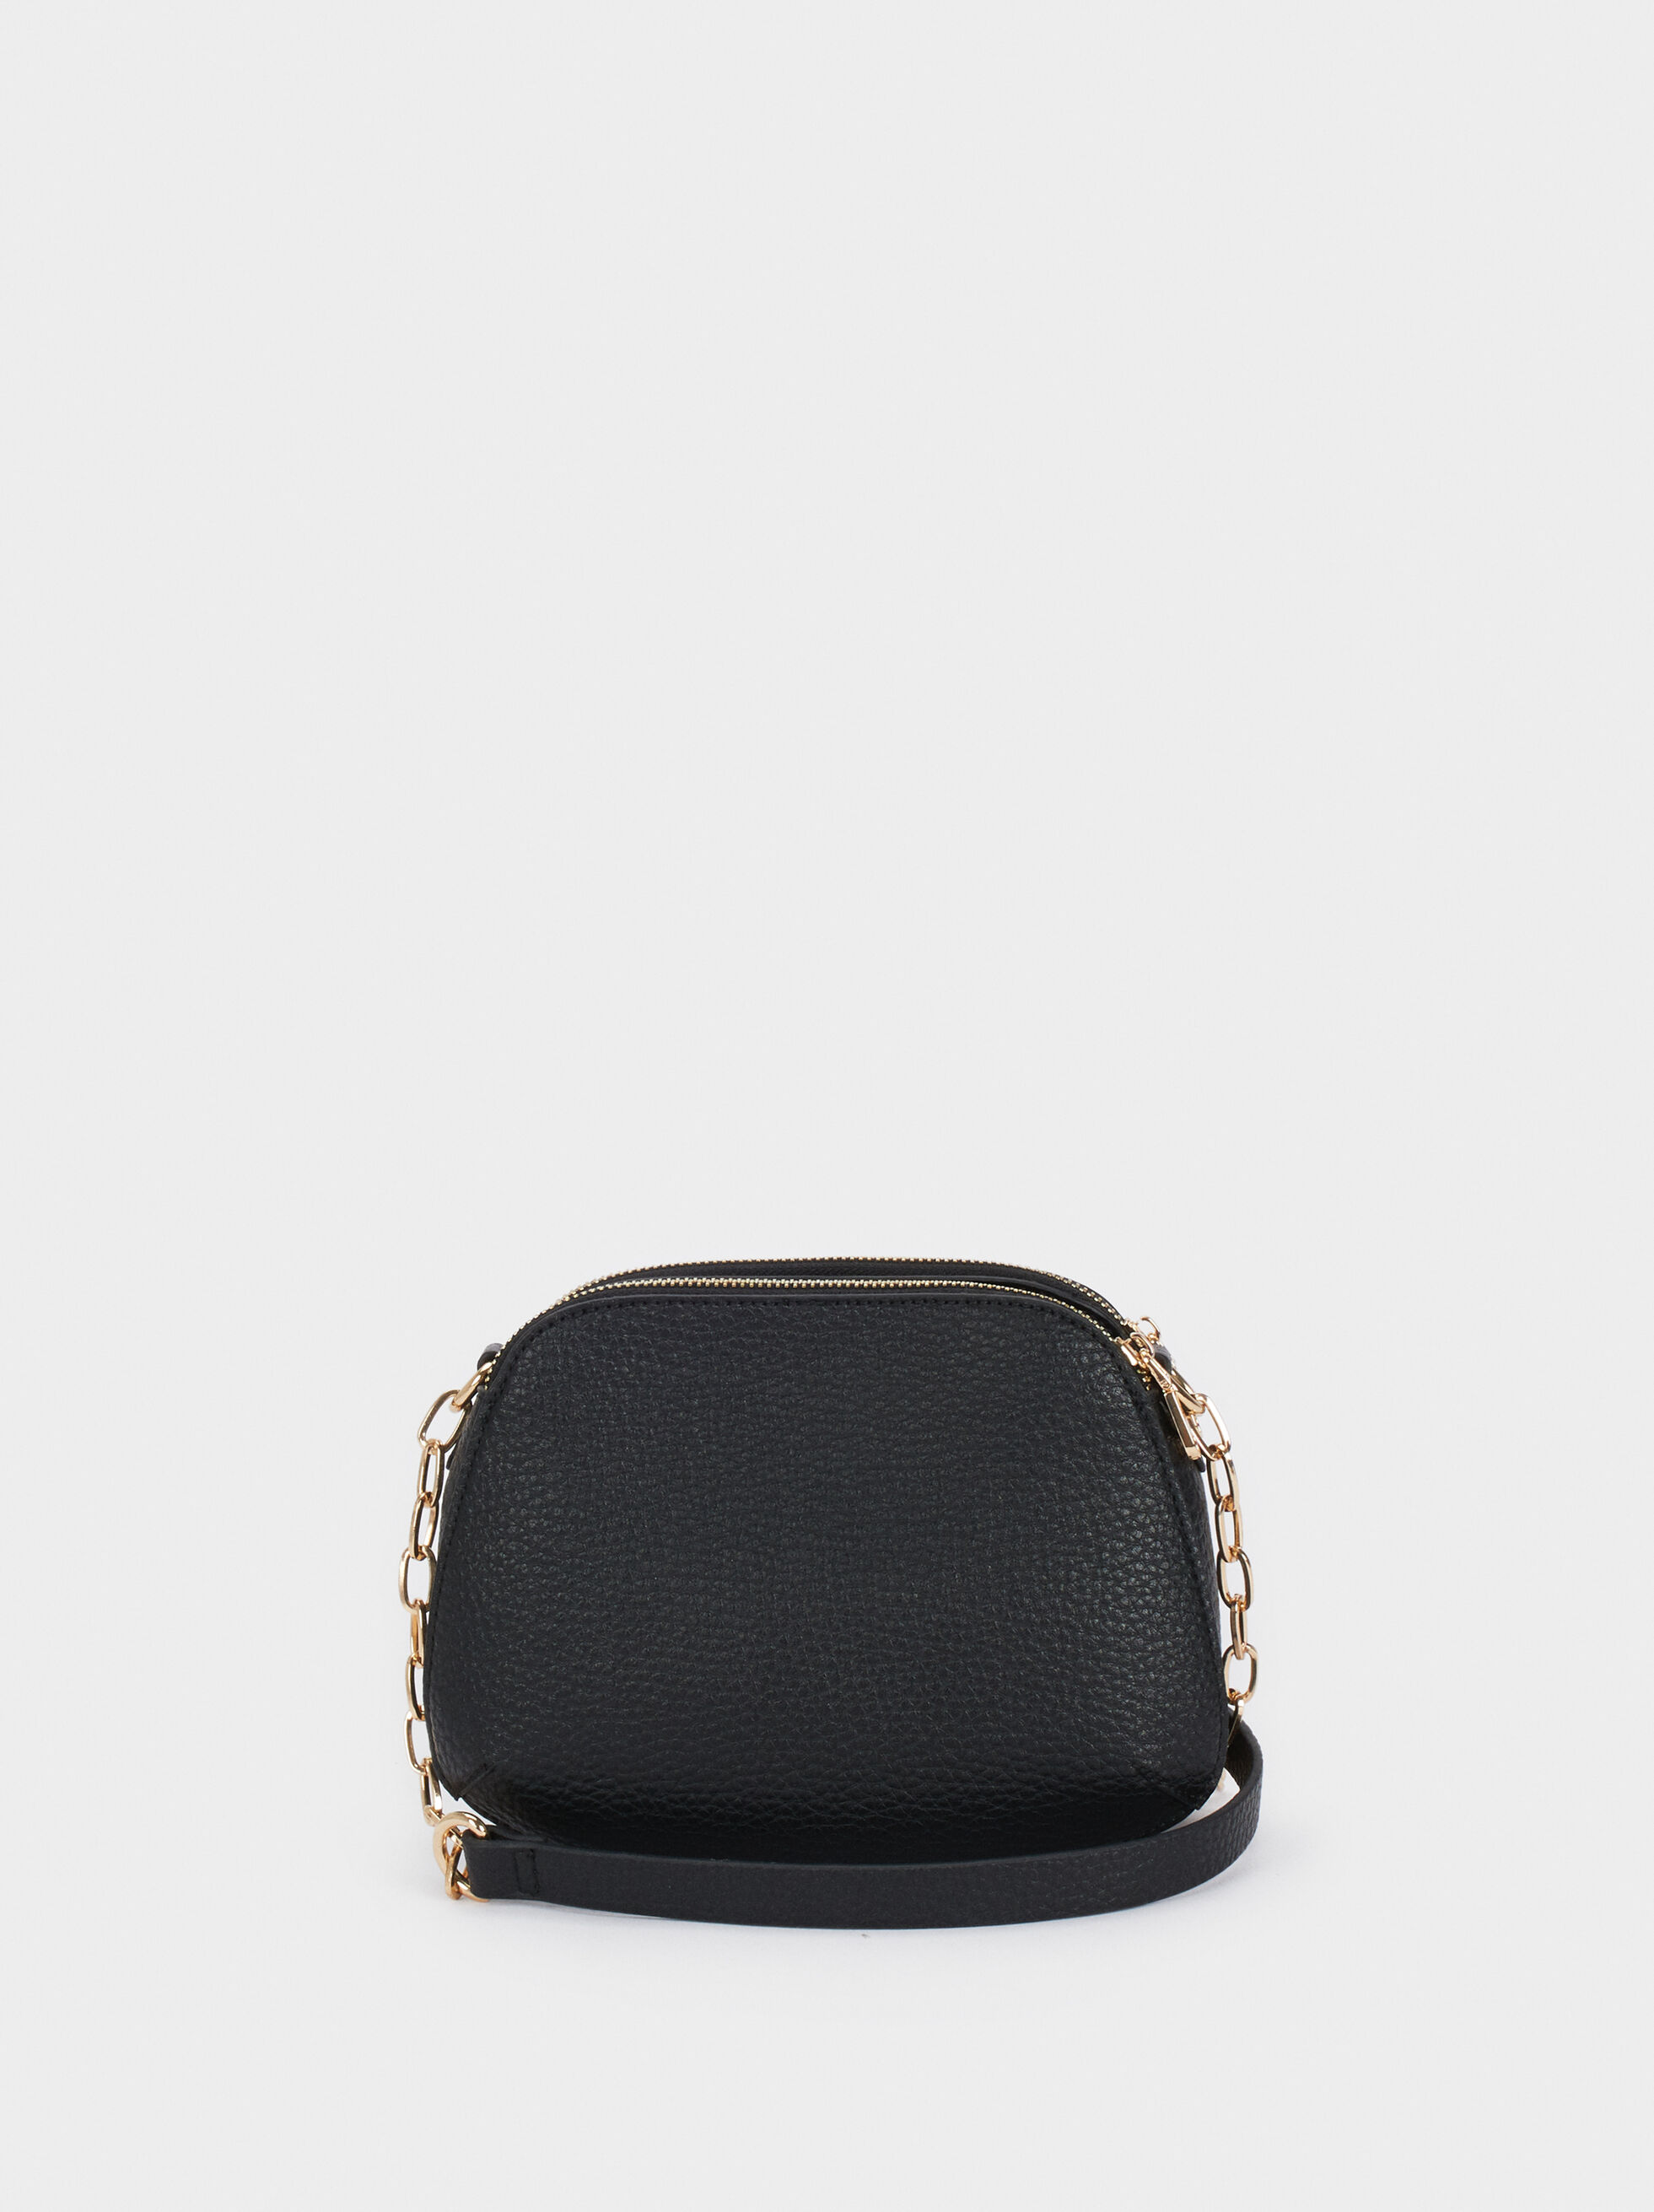 Crossbody Bag With Contrast Strap, Black, hi-res